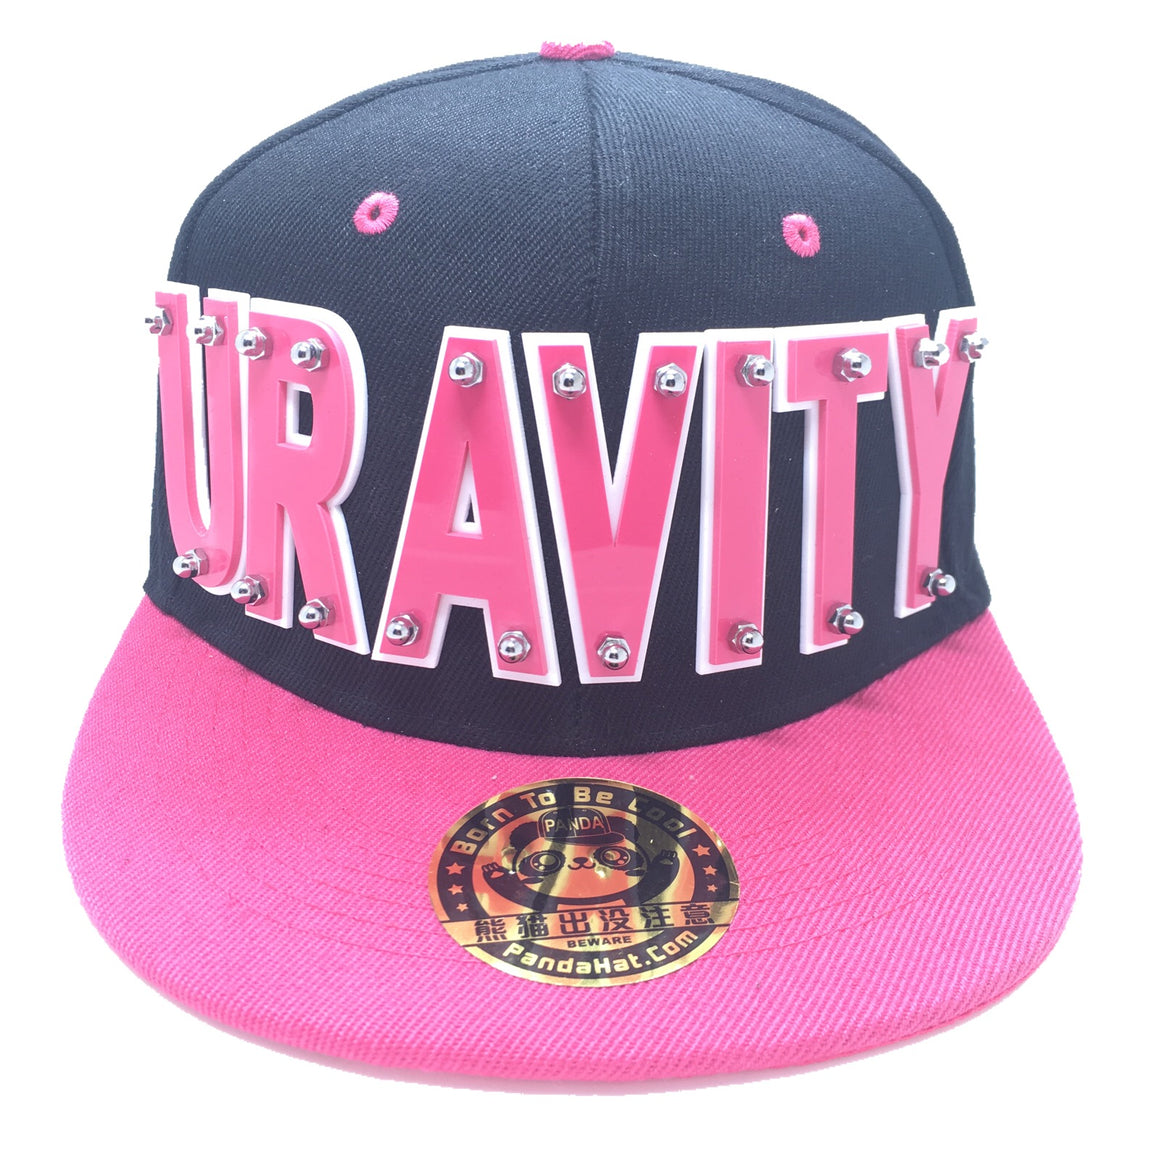 URAVITY HAT IN BLACK WITH PINK BRIM